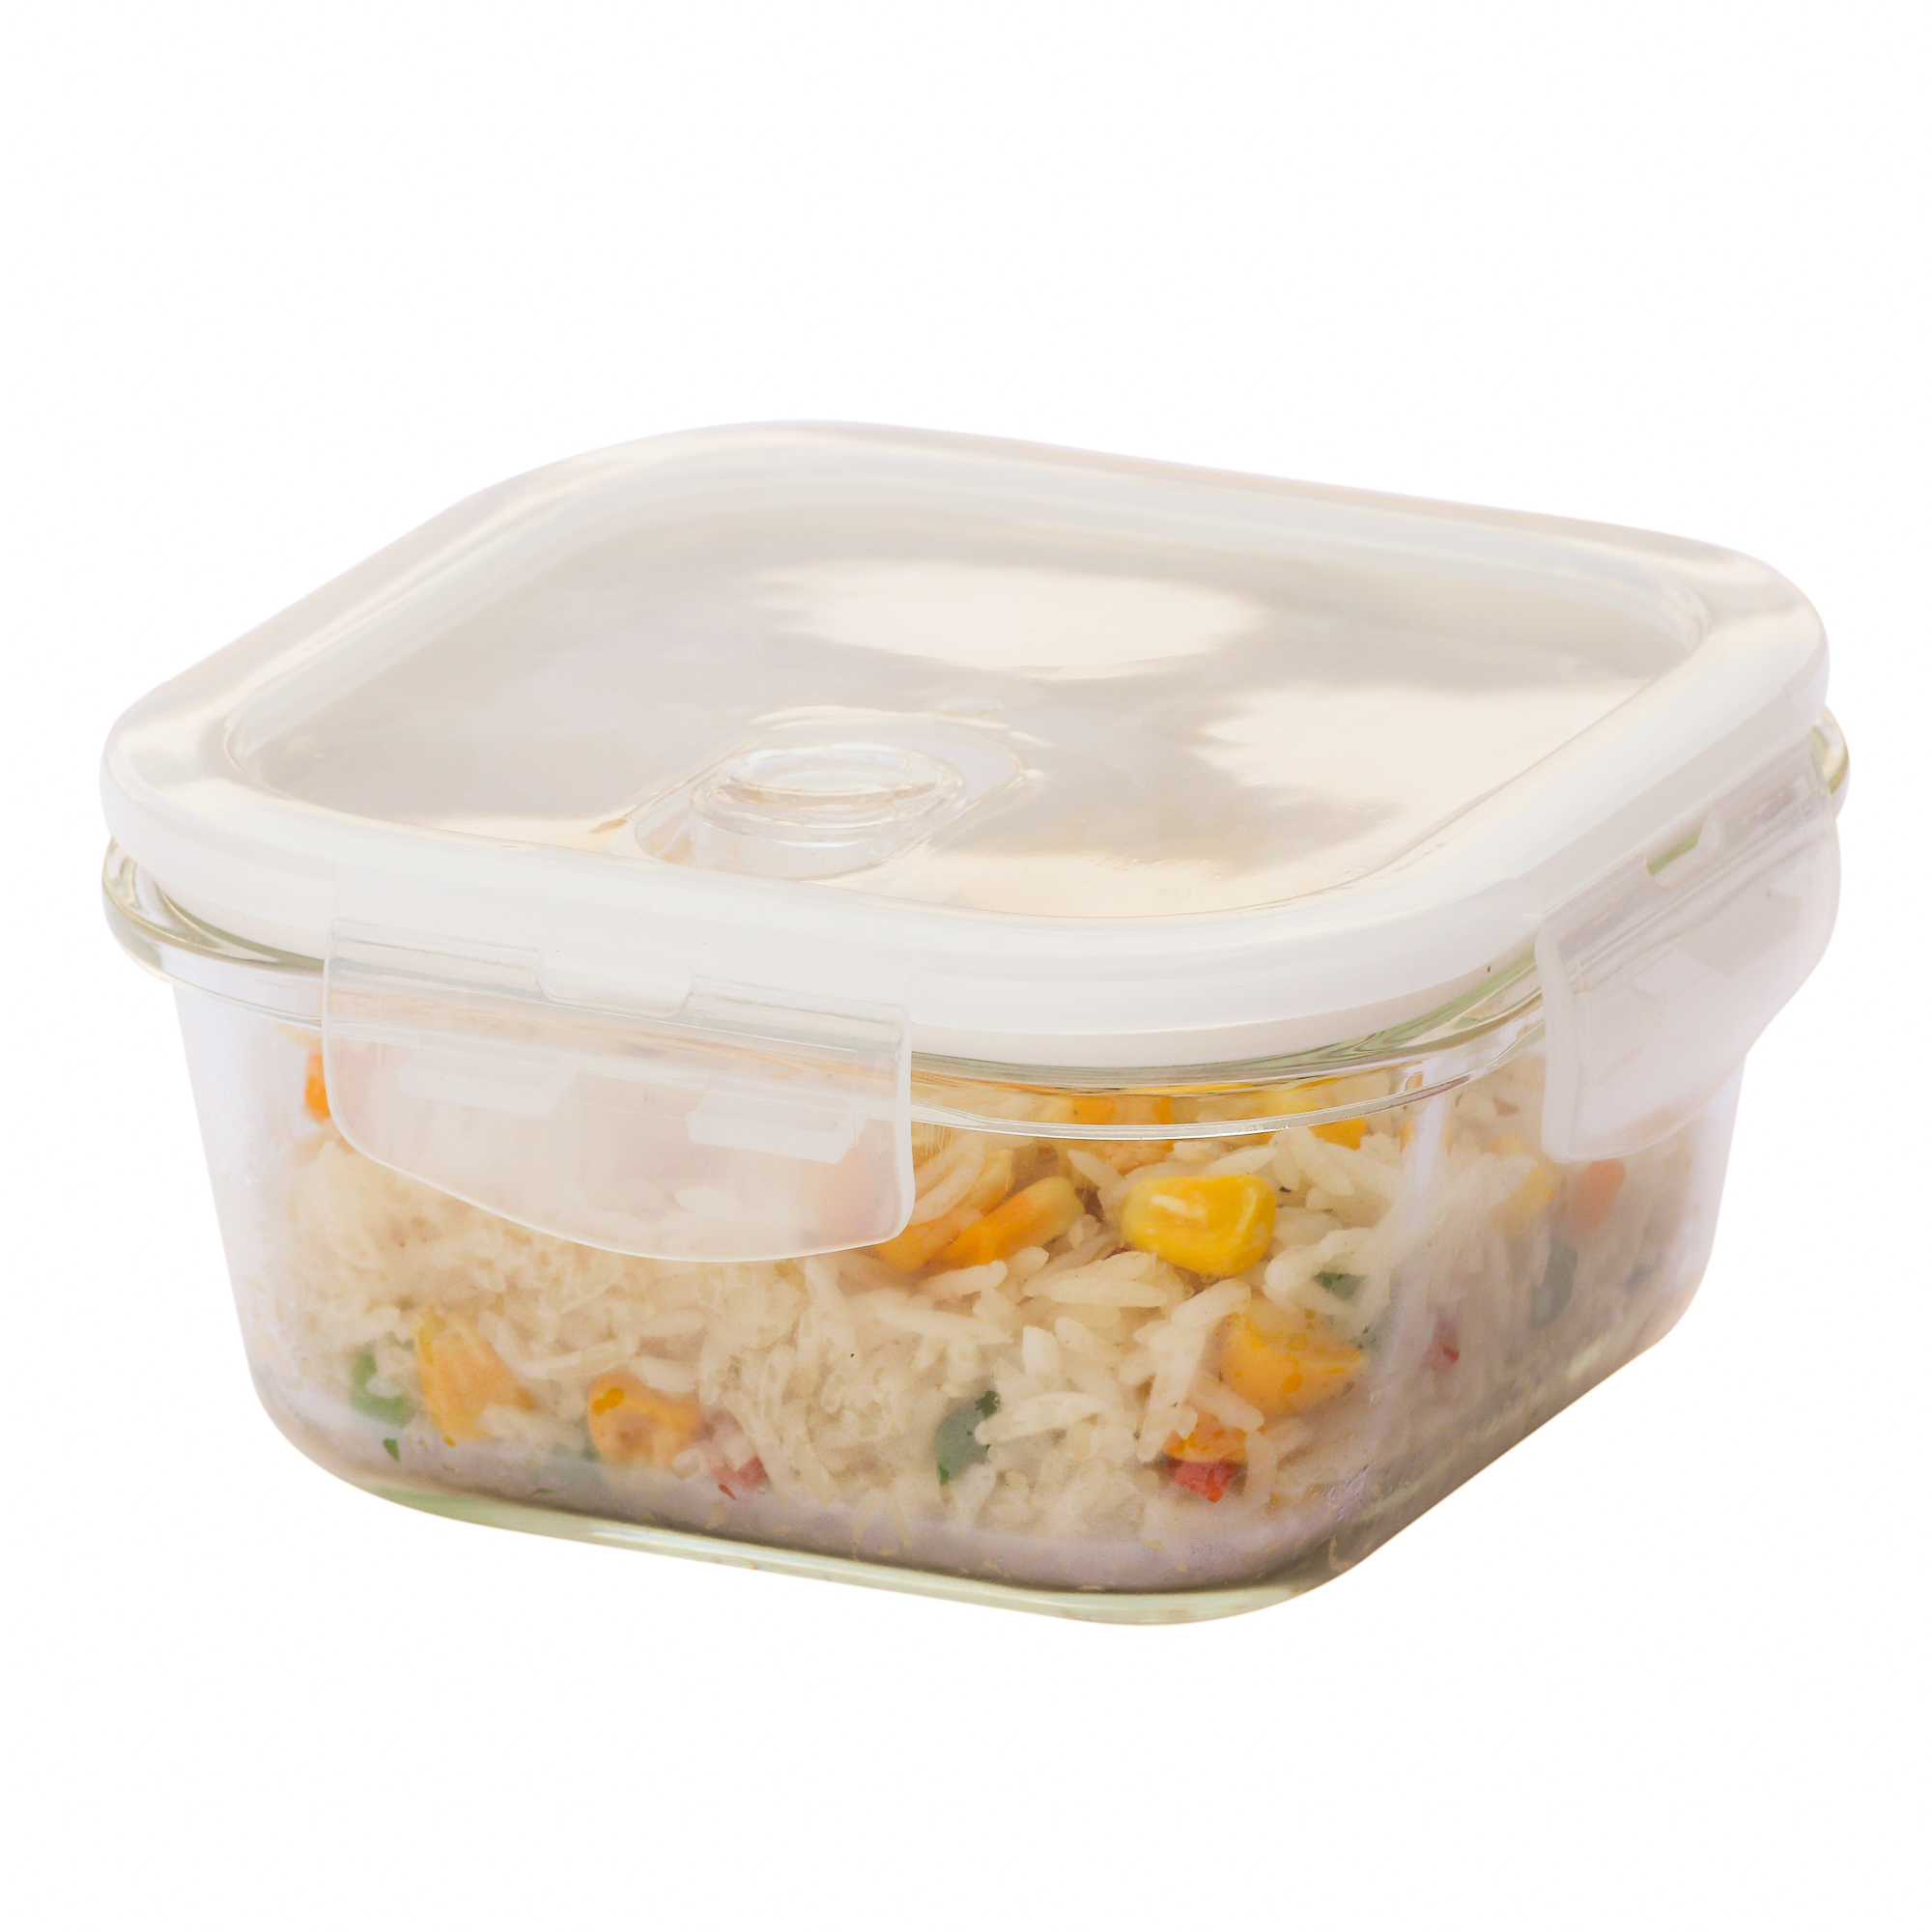 Femora Borosilicate Glass Square Container with Air Vent Lid 800 ML